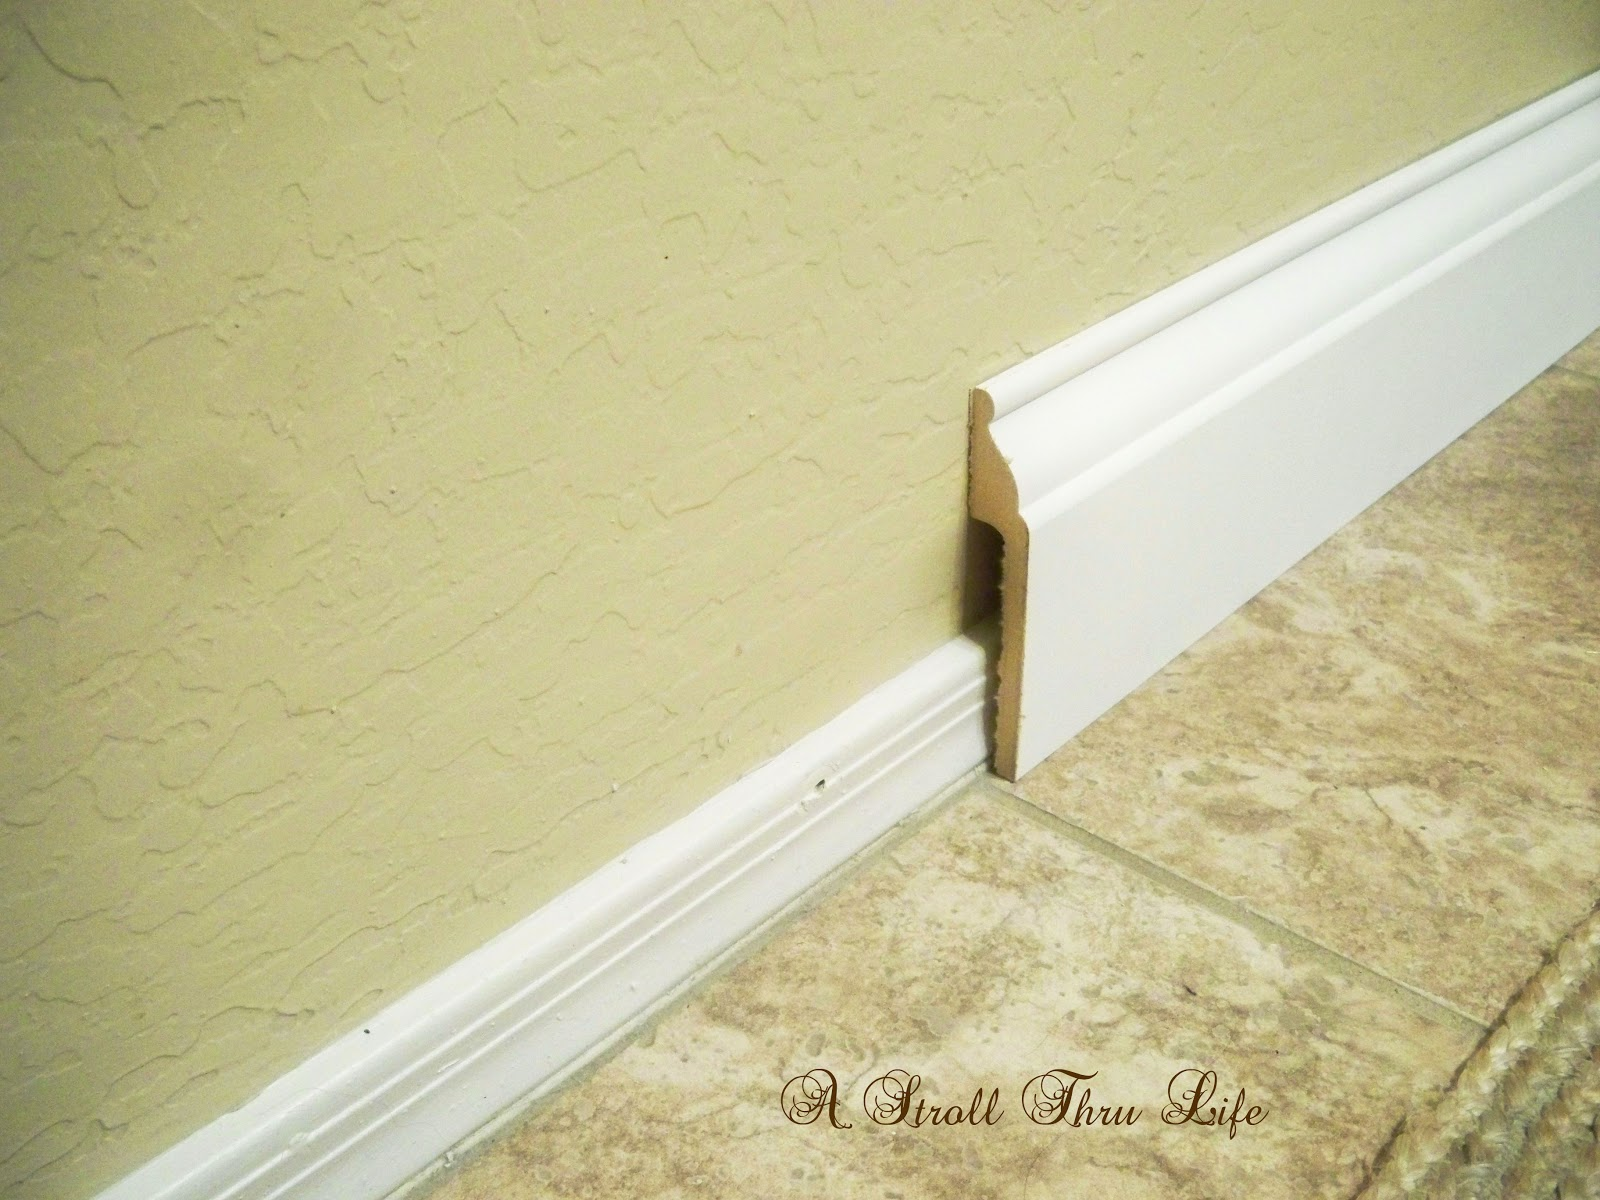 Chair Rail Corners Without Coping The Outlet Portland A Stroll Thru Life Install Wide Baseboard Molding Over